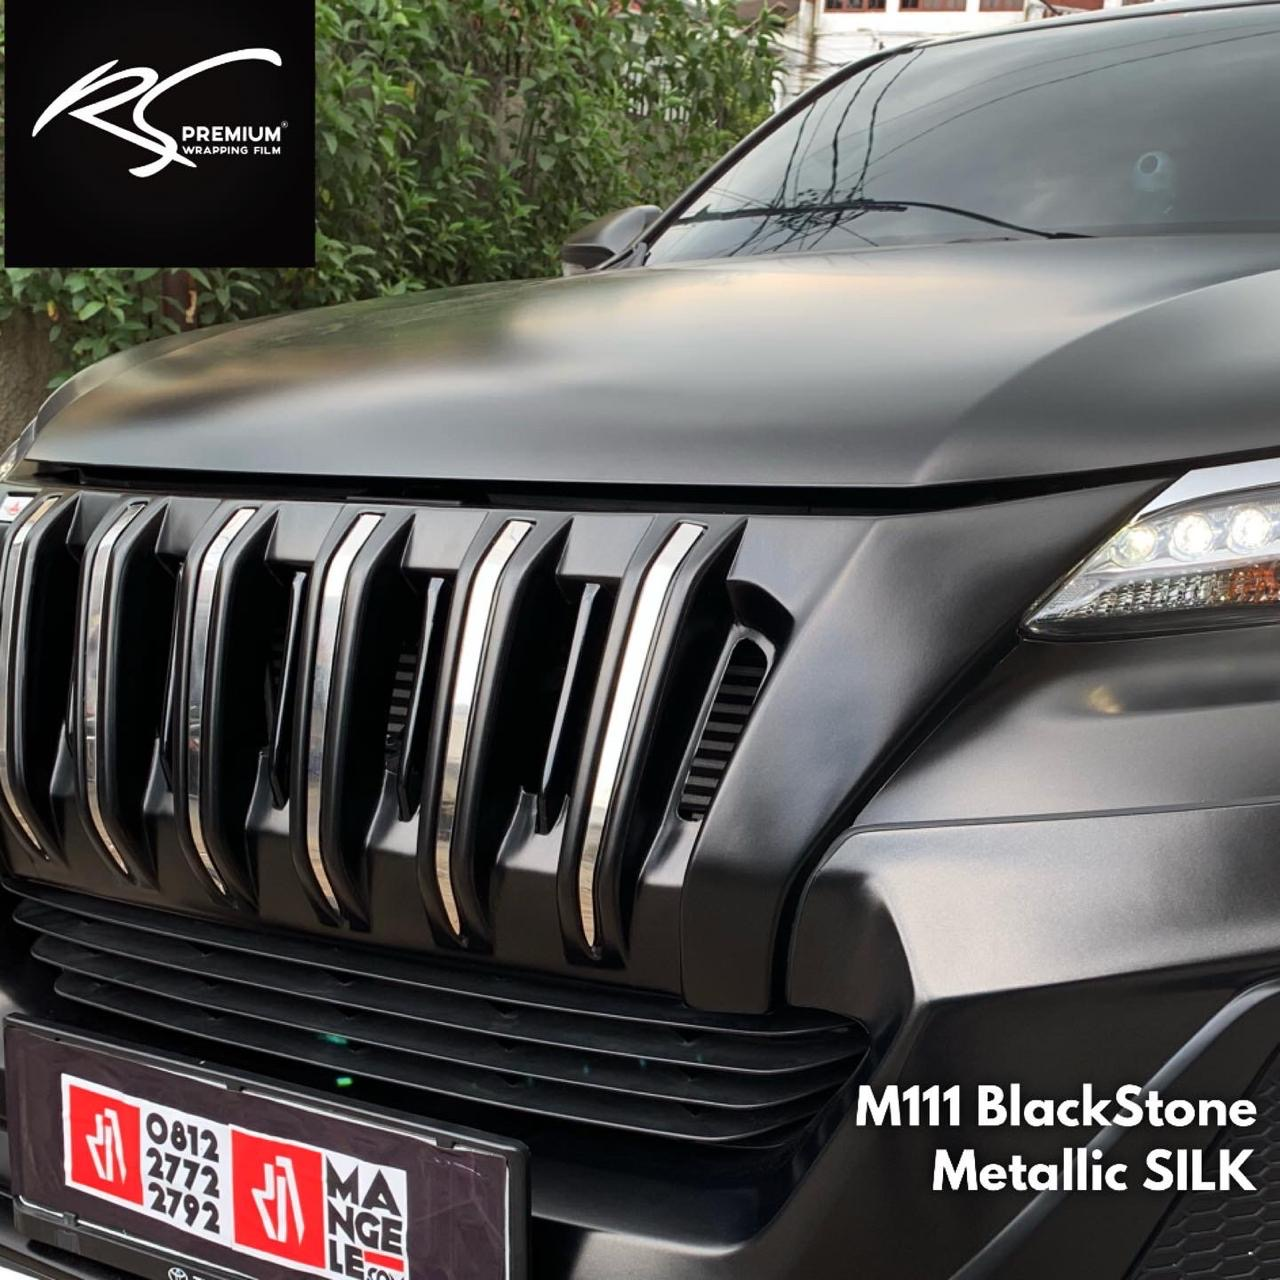 Wrapping Stiker Mobil | Fortuner Fullbody M111 Black Stone Metallic Silk | Mangele Stiker 081227722792